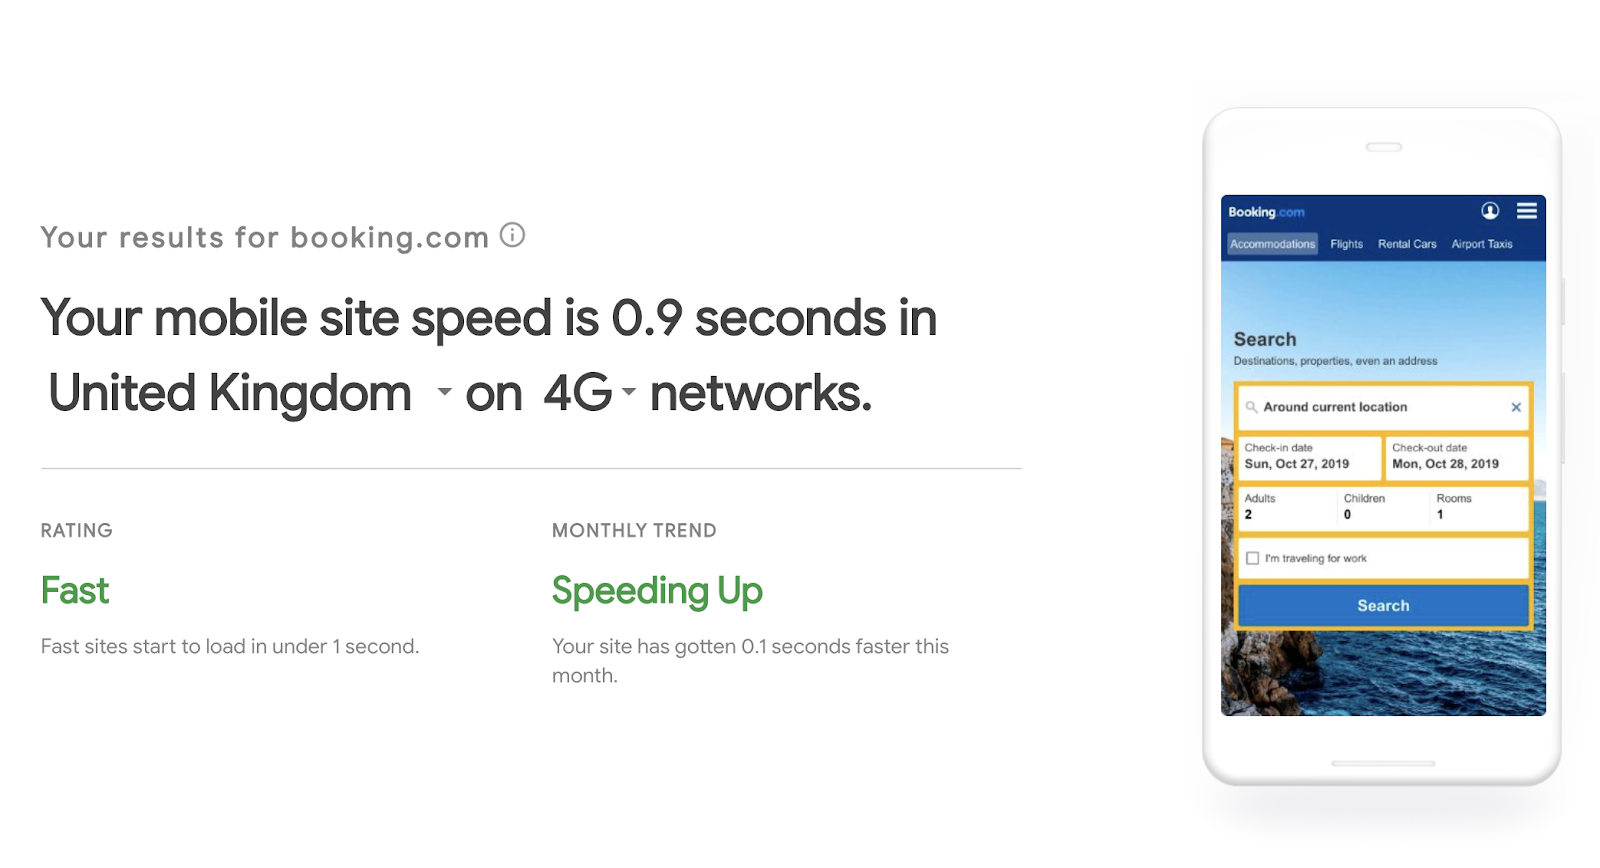 Booking.com's website loads in 0.9 seconds using 4G networks in the UK